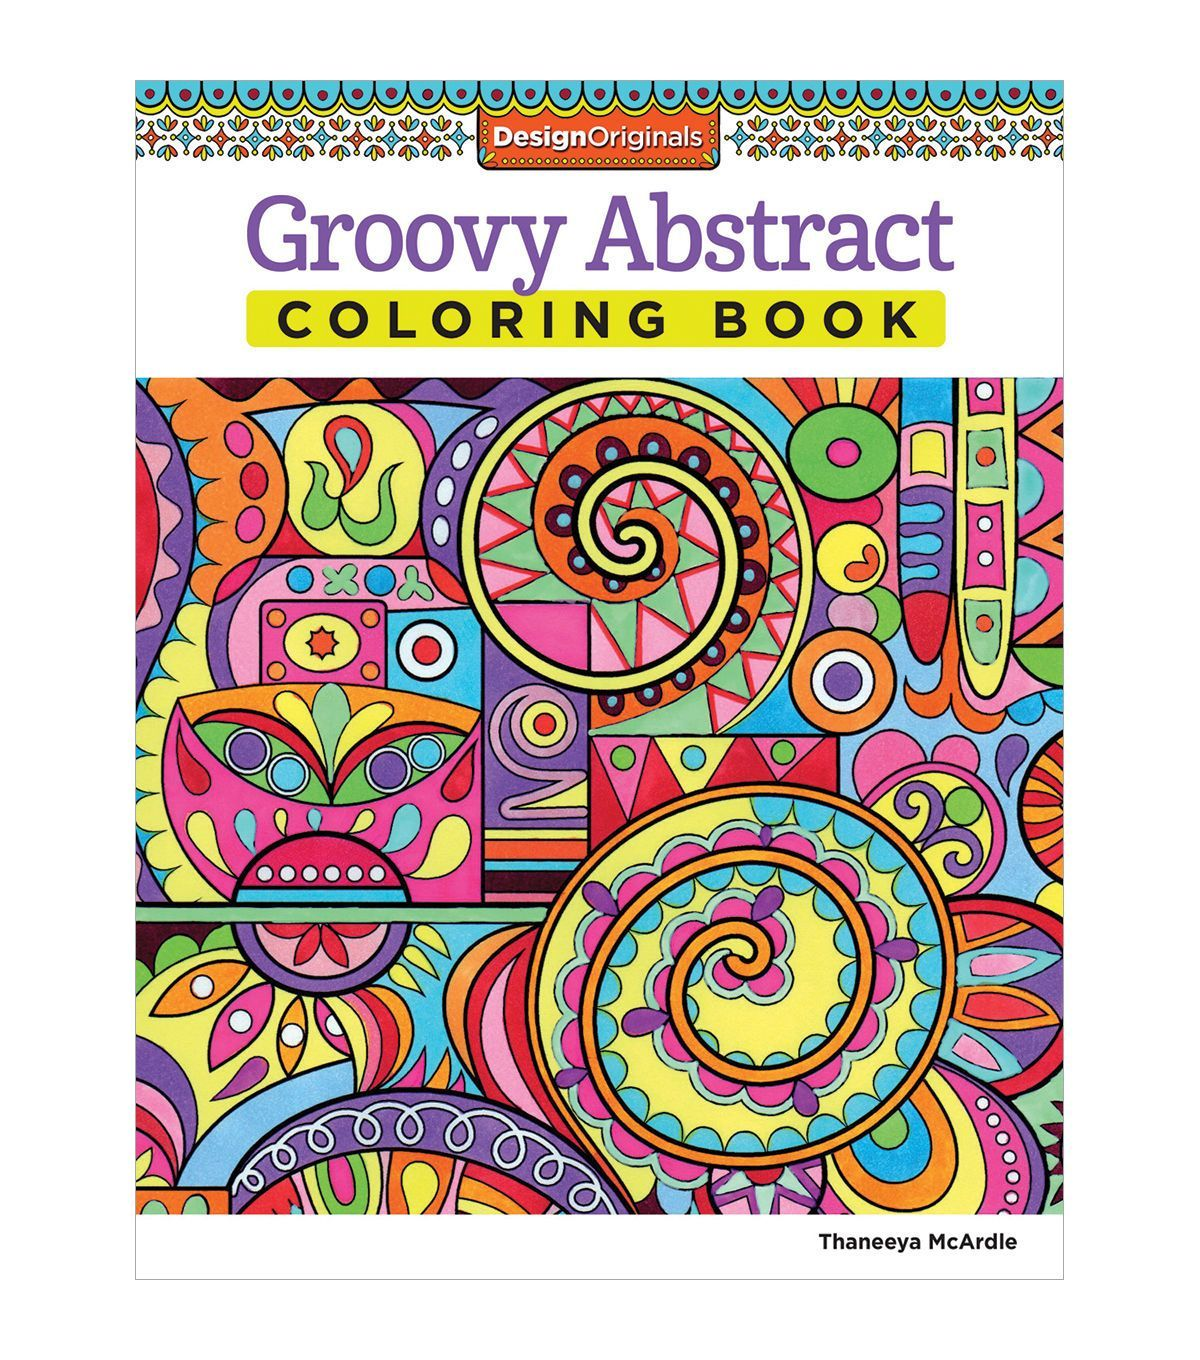 Groovy Abstract Coloring Book | Classeur Coloring book | Pinterest ...